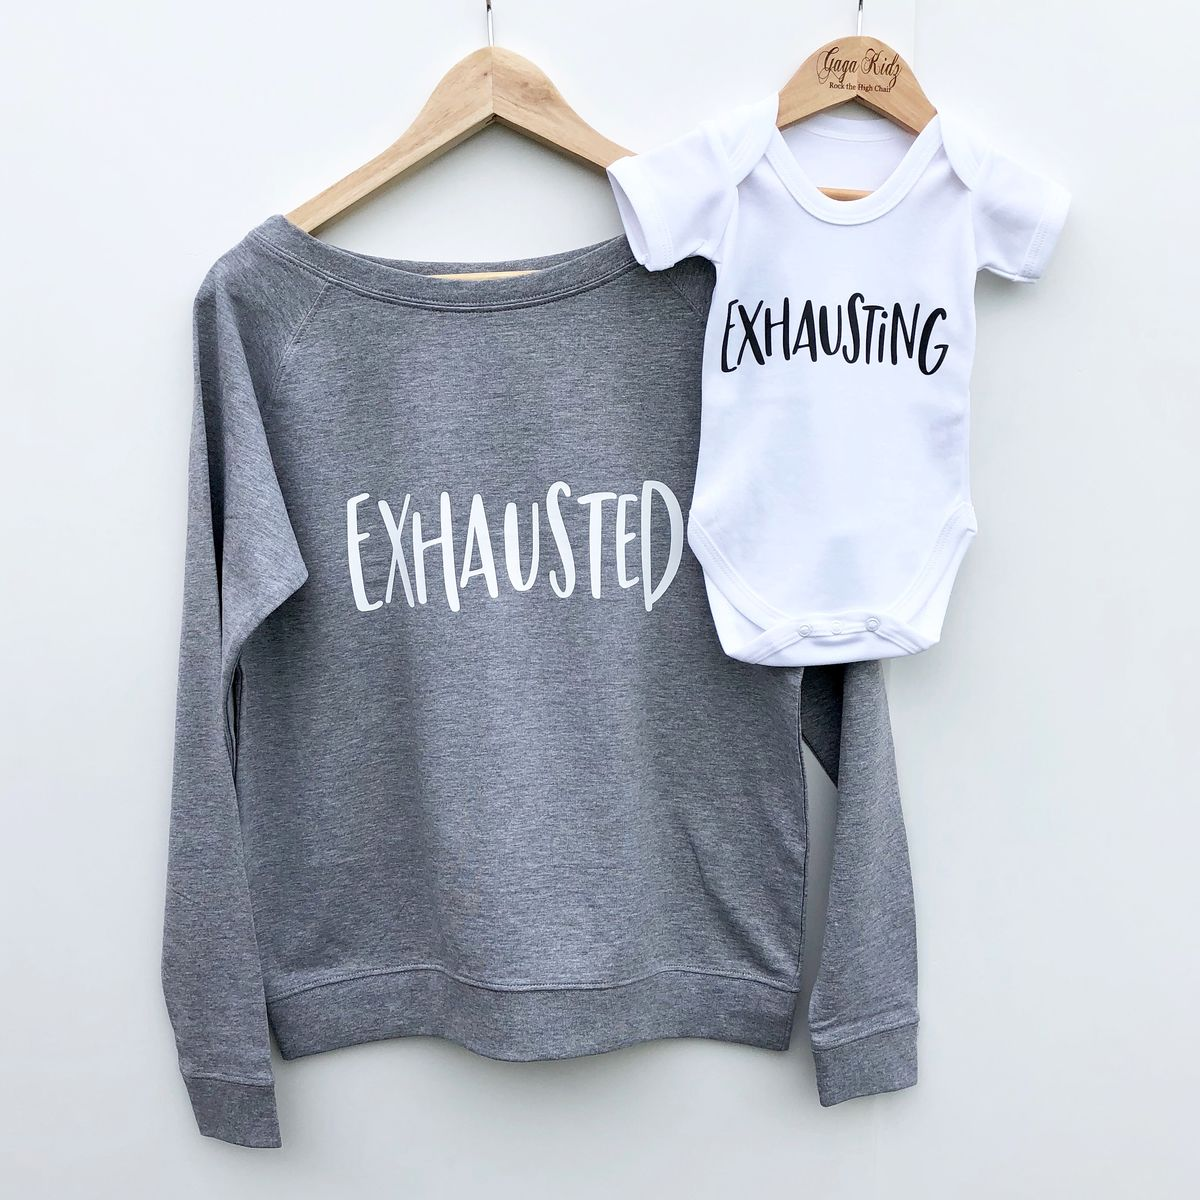 'Exhausted' Women's Sweatshirt - product images  of